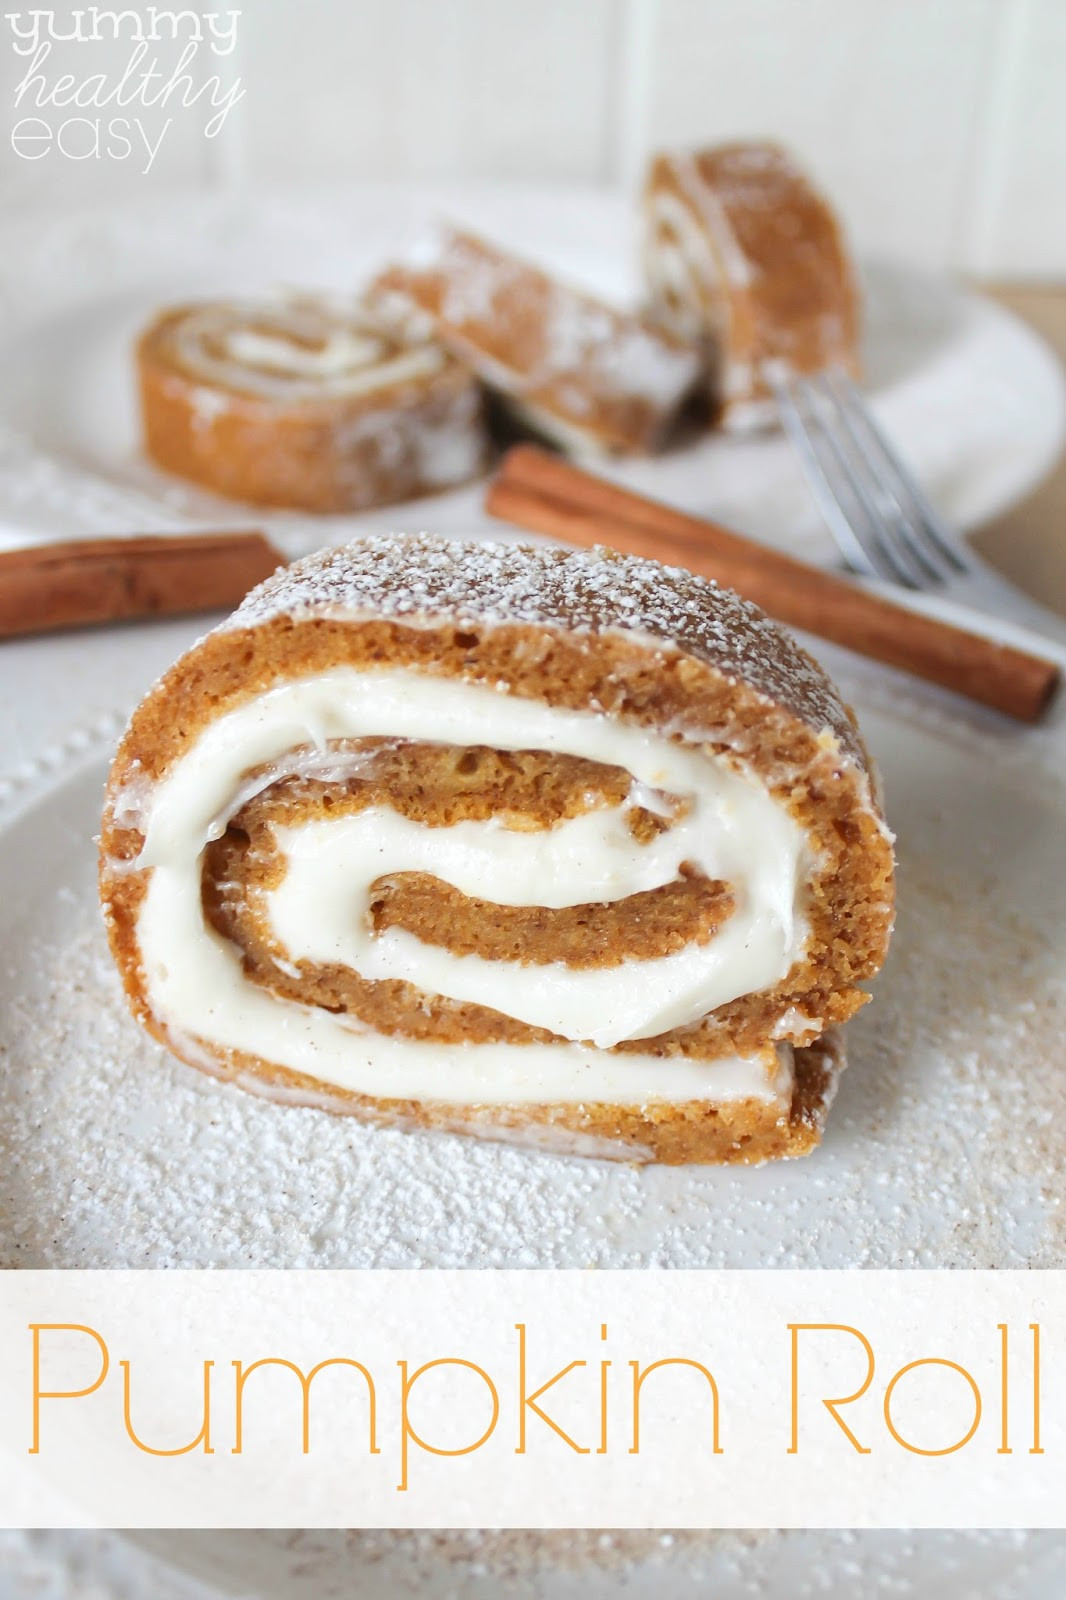 Quick And Easy Pumpkin Desserts  Easy Pumpkin Roll Dessert Yummy Healthy Easy